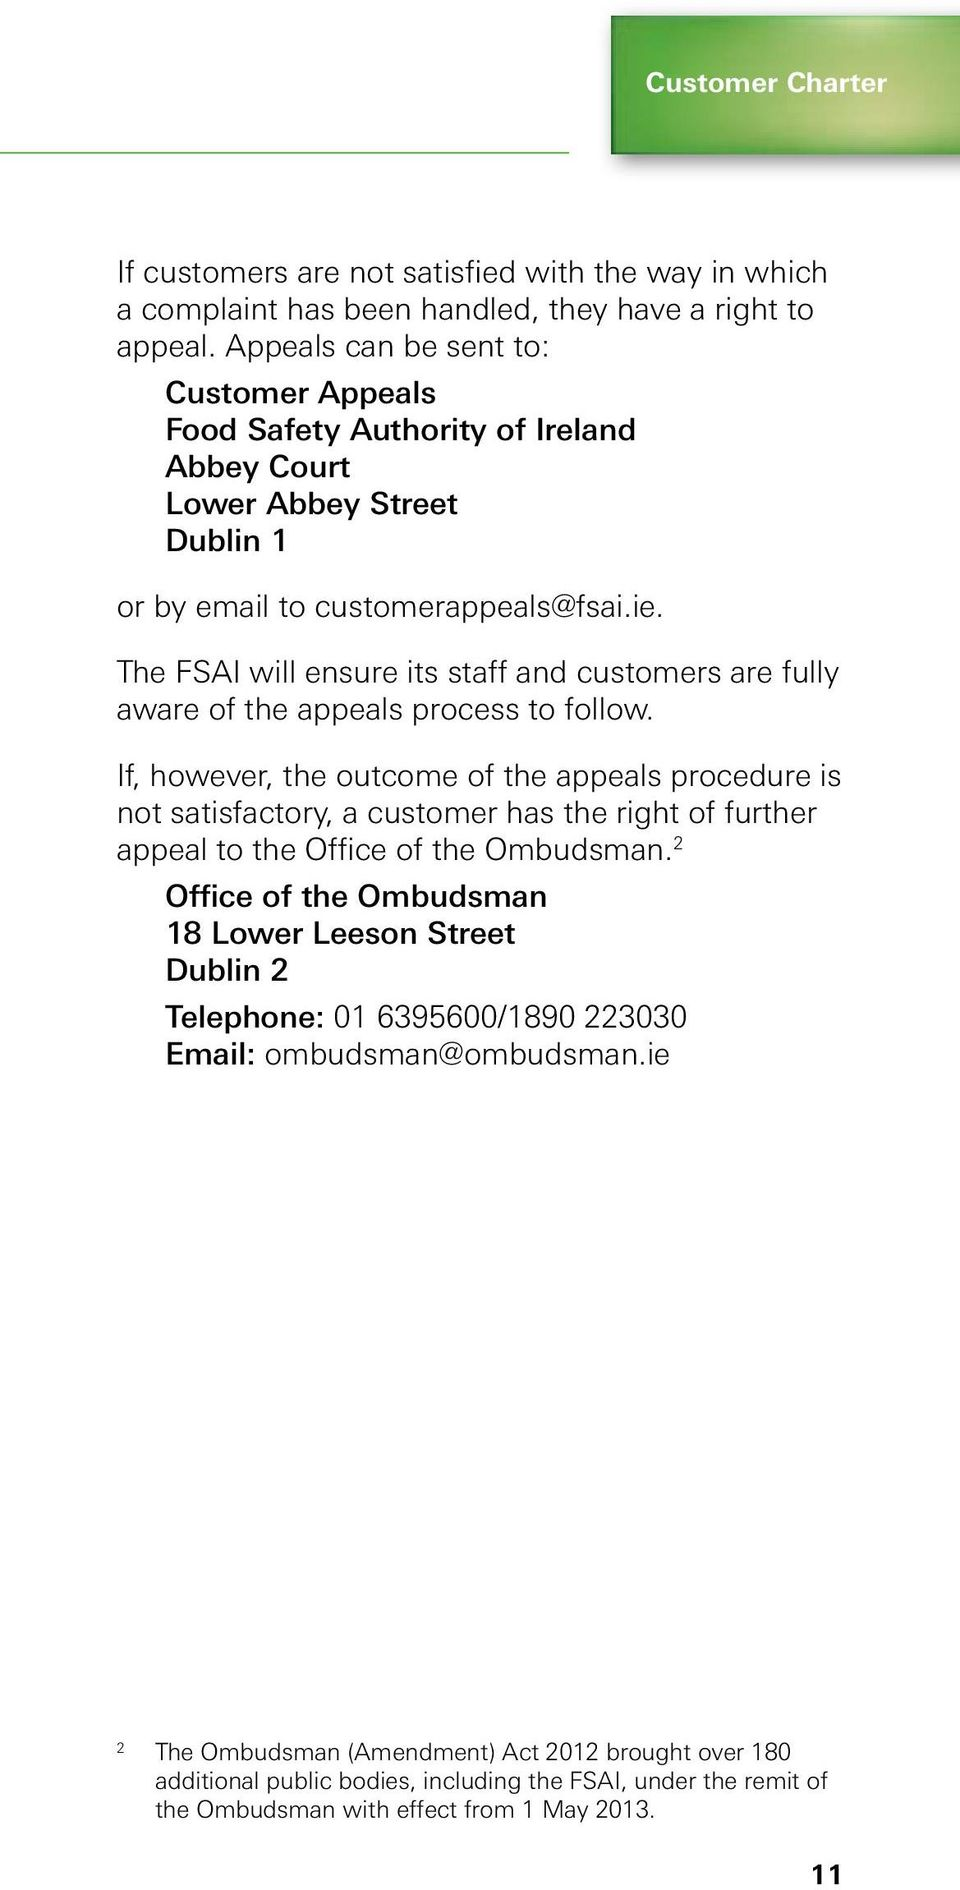 The FSAI will ensure its staff and customers are fully aware of the appeals process to follow.